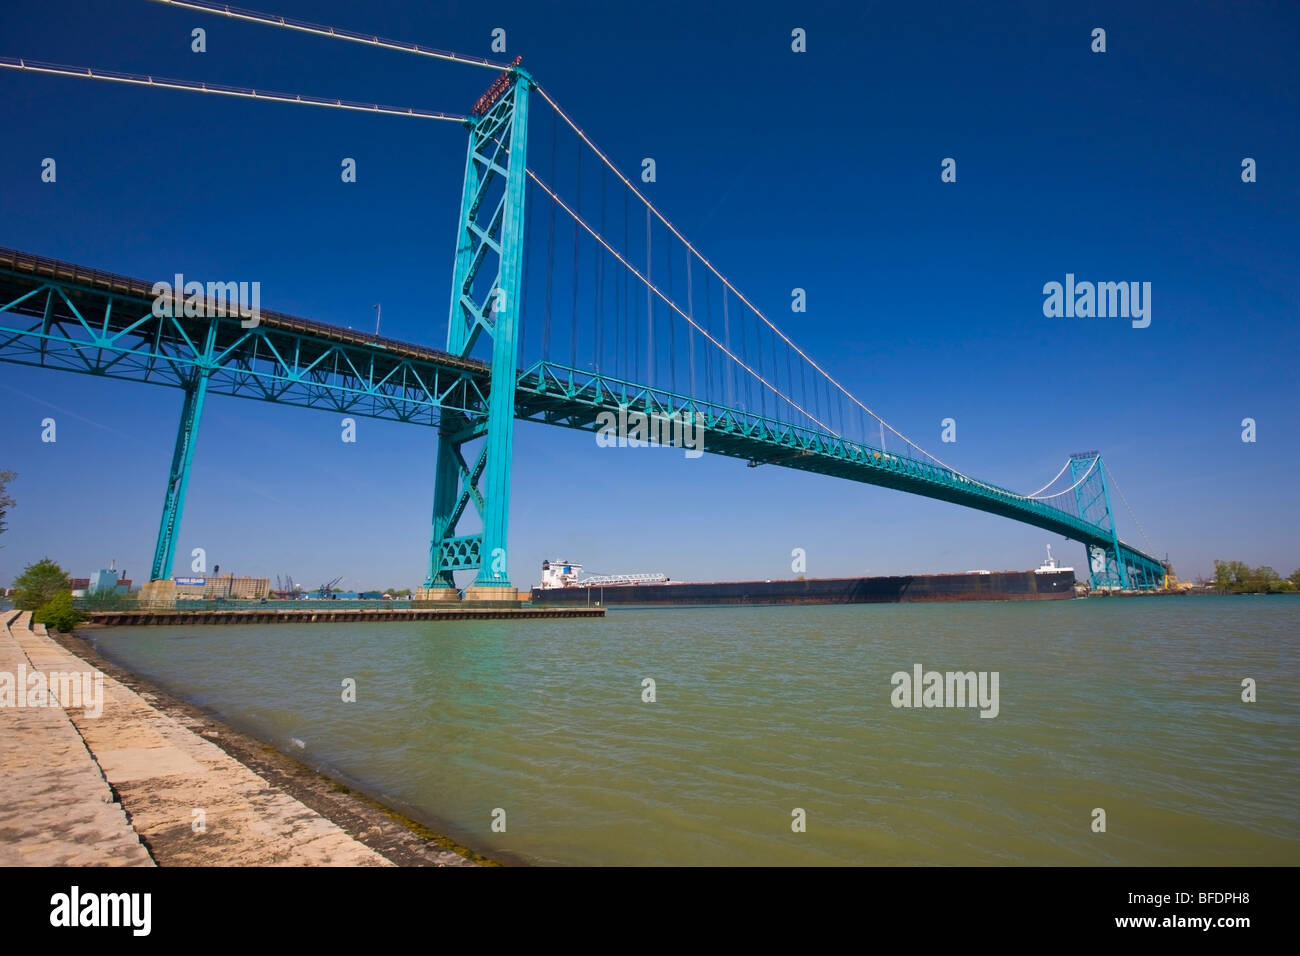 Large bulk carrier ship passing beneath the Ambassador Bridge  Windsor, Ontario, Canada and Detroit, Michigan, USA - Stock Image